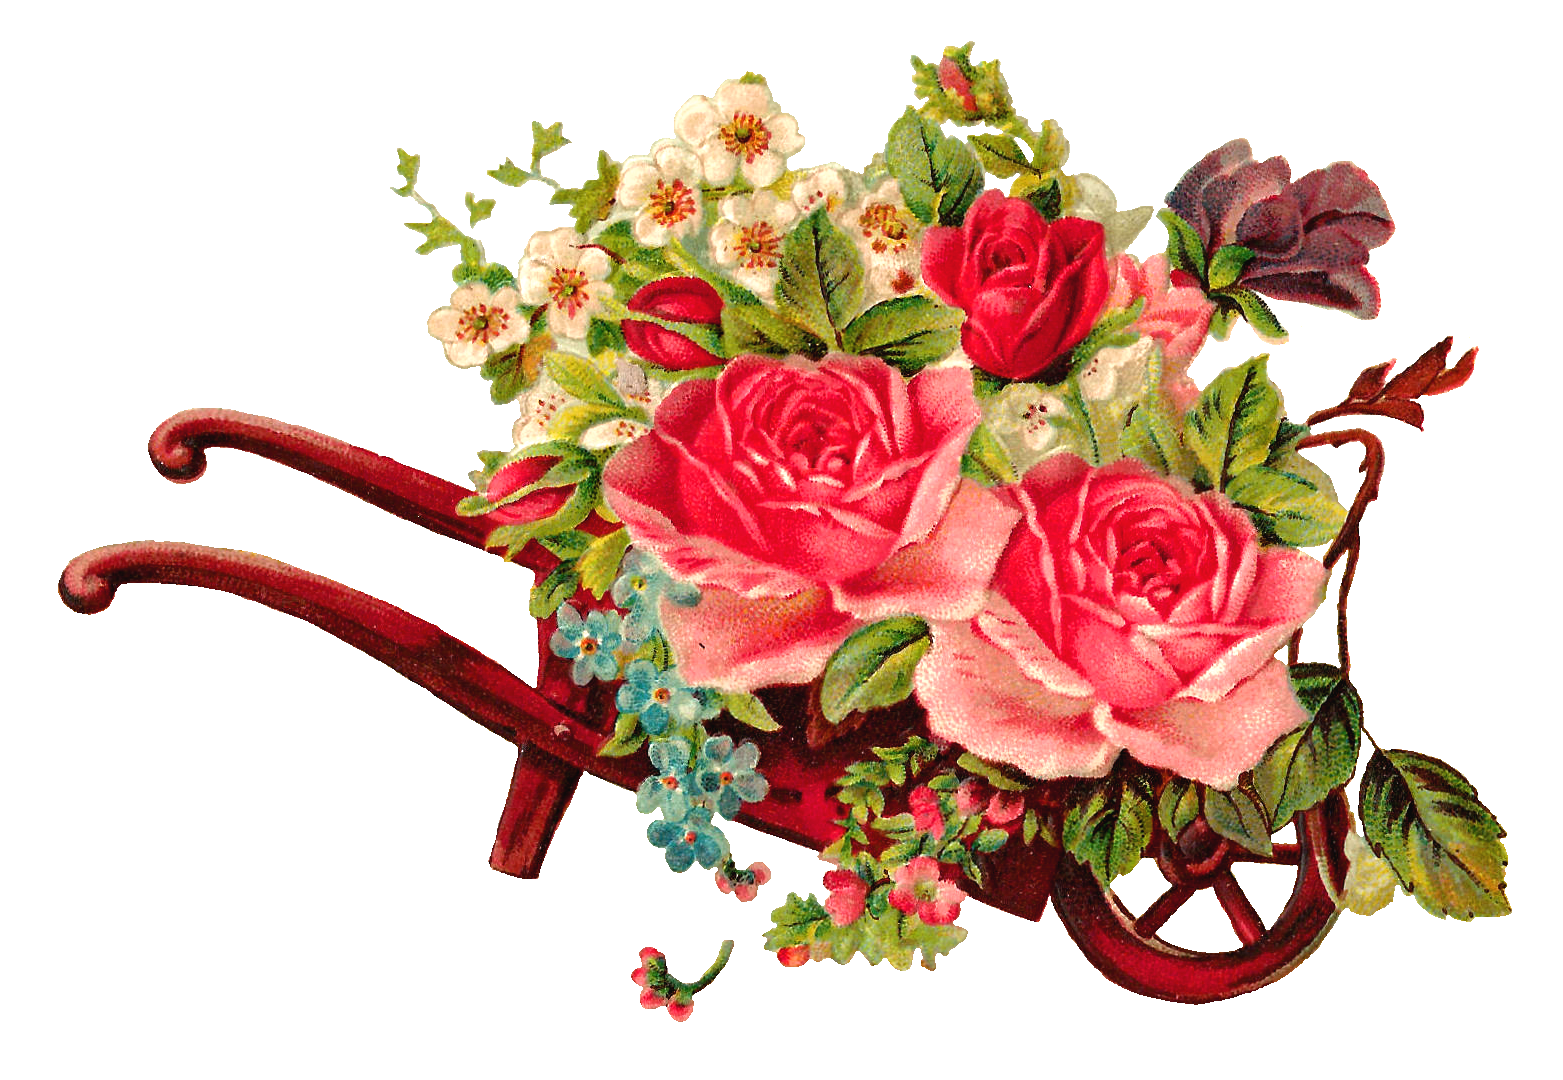 Turkey with a wheel barrow clipart image royalty free stock Antique Images: Free Digital Flower Rose Images of Rose Bouquet in ... image royalty free stock